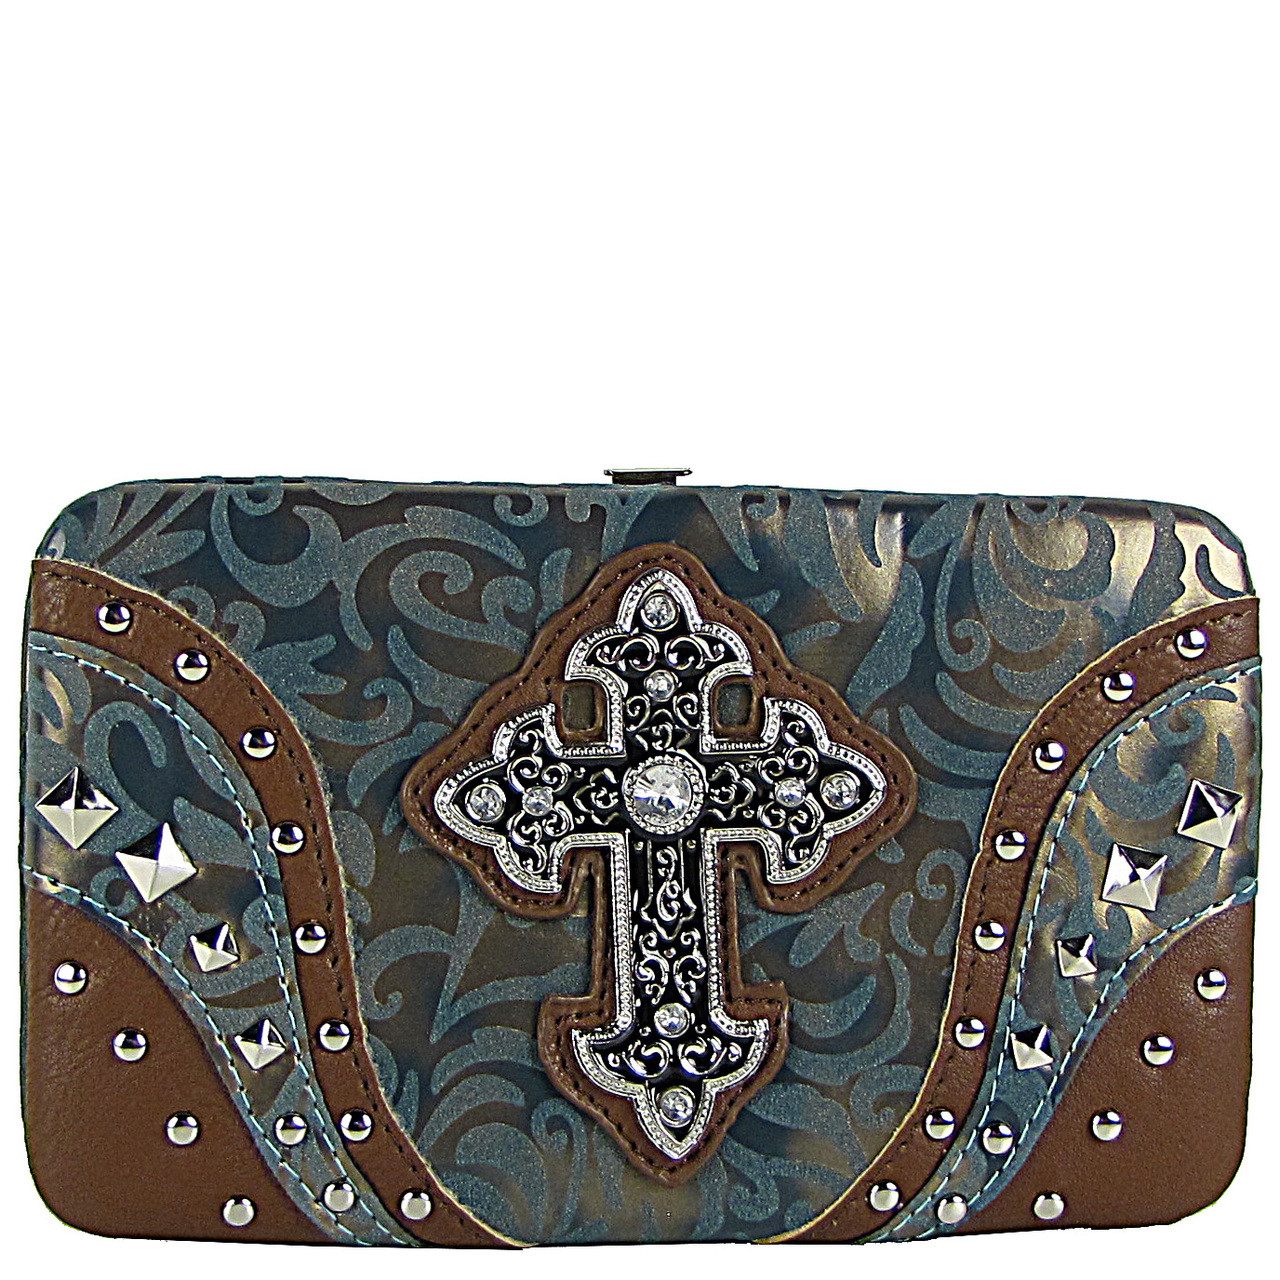 TEAL STUDDED RHINESTONE TOOLED CROSS LOOK FLAT THICK WALLET FW2-04113TEL